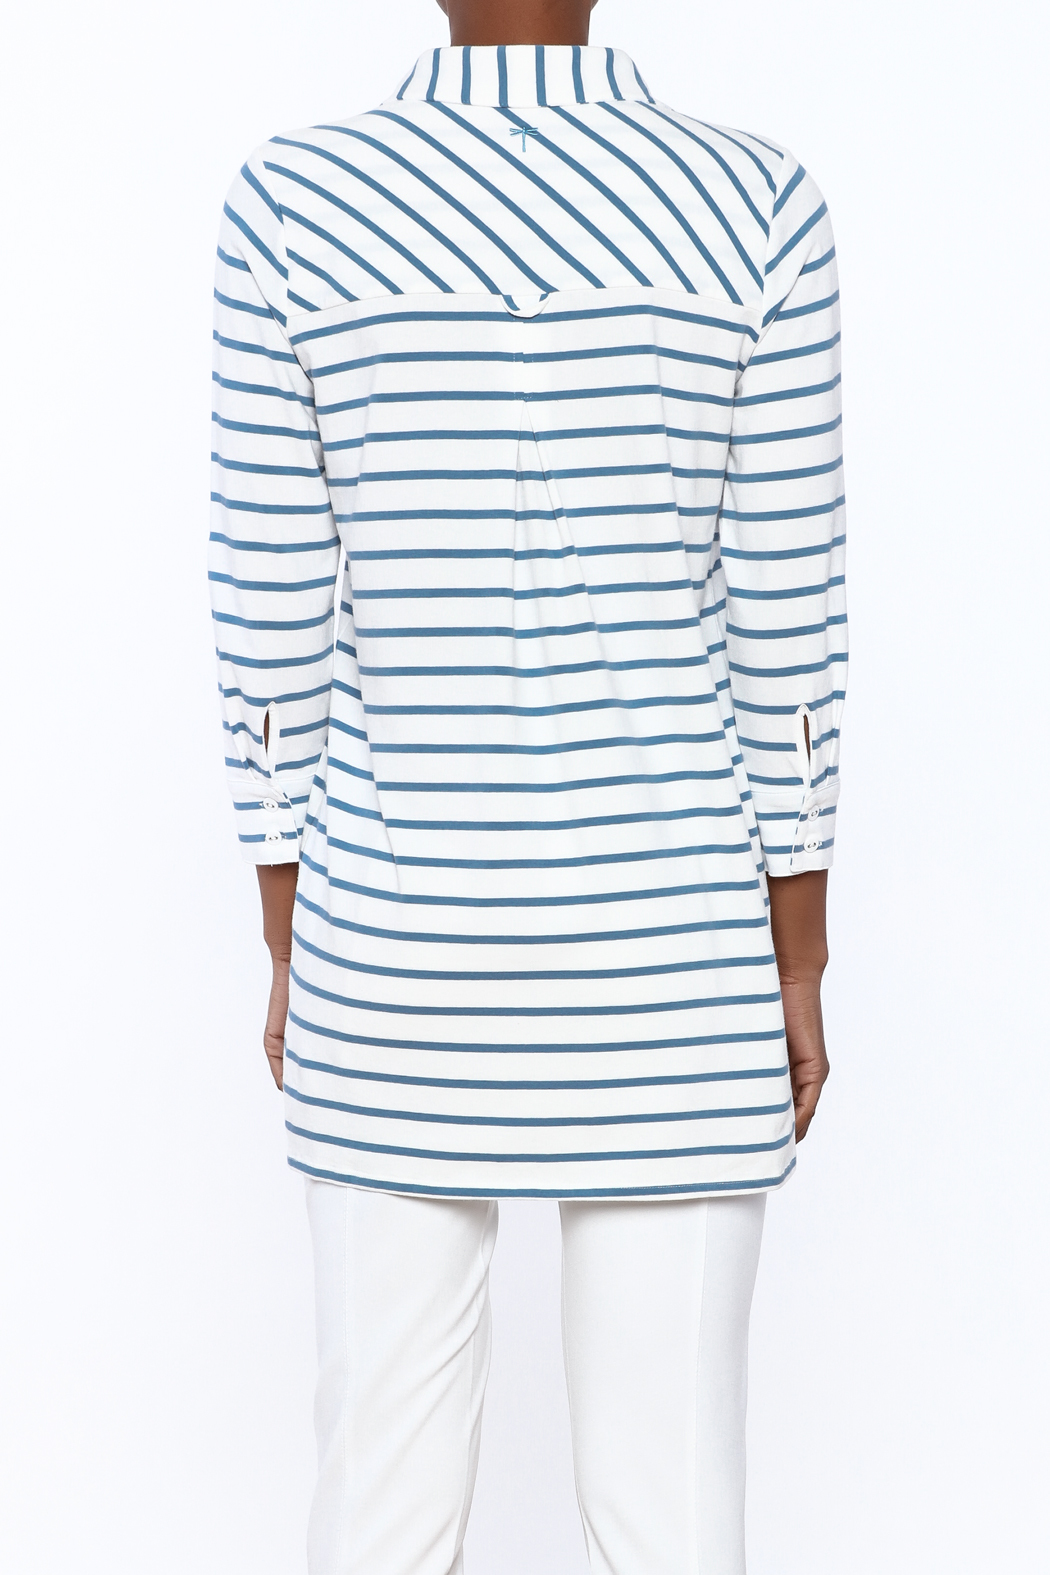 Tyler Boe Striped Button-Down Polo - Back Cropped Image